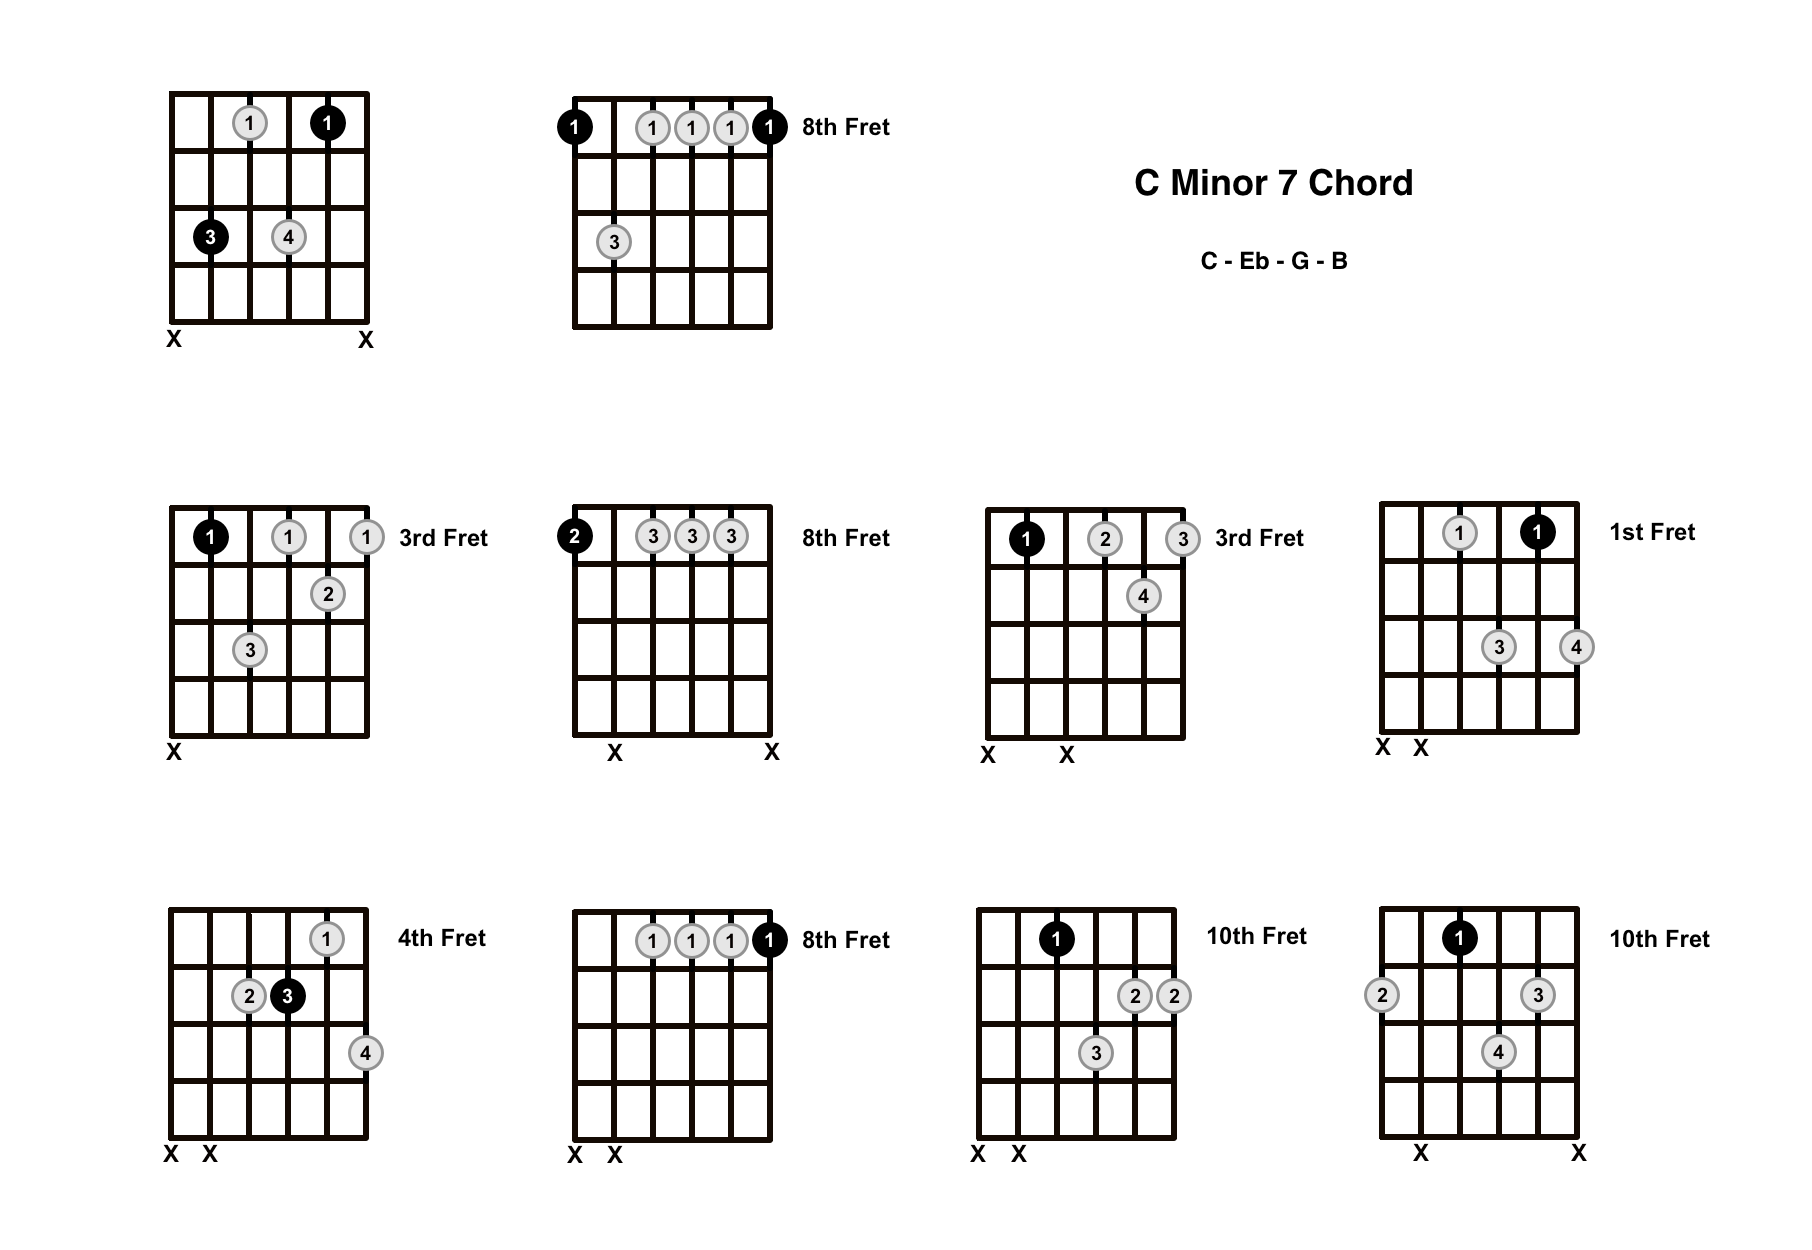 Cm7 Chord on the Guitar (C Minor 7) – Diagrams, Finger Positions, Theory